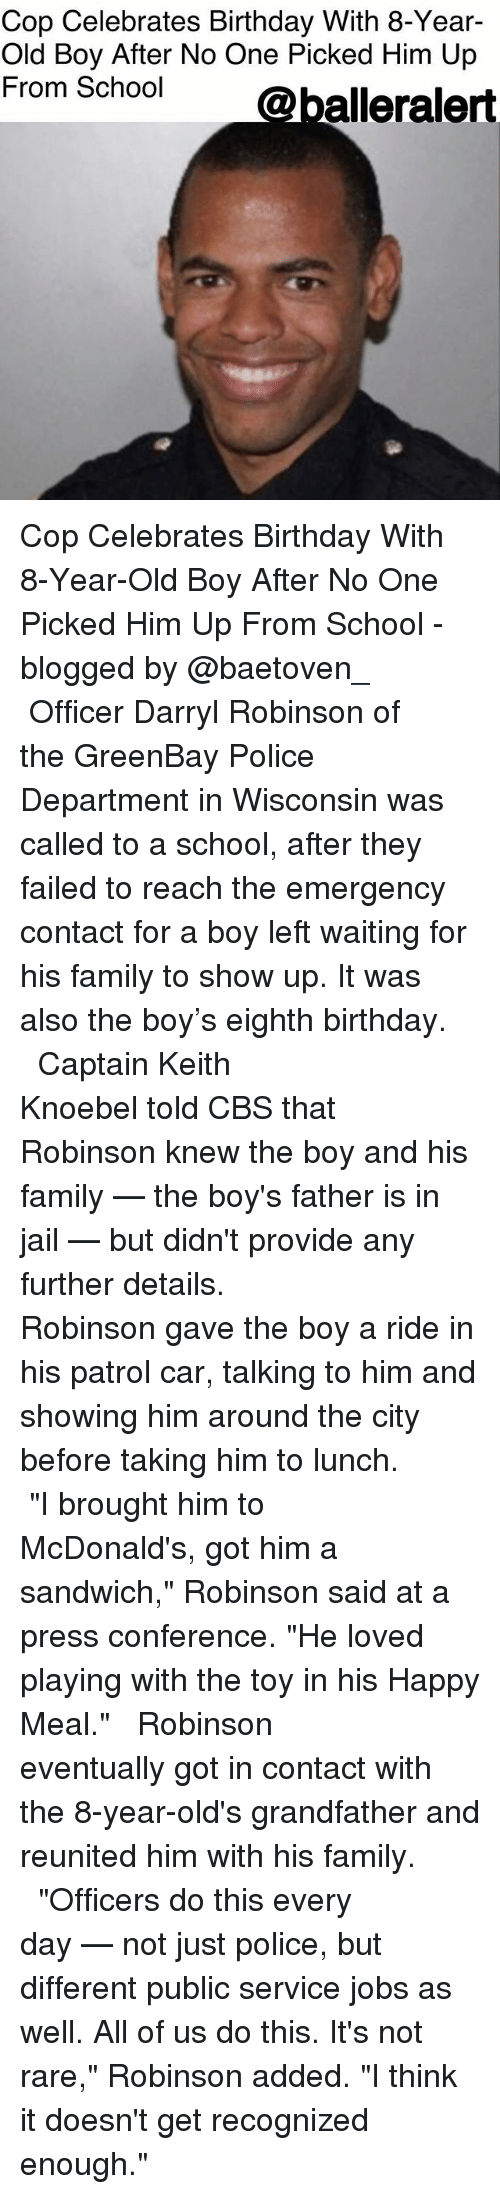 """Birthday, Family, and Jail: Cop Celebrates Birthday With 8-Year-  Old Boy After No One Picked Him Up  From School  alleralert Cop Celebrates Birthday With 8-Year-Old Boy After No One Picked Him Up From School - blogged by @baetoven_ ⠀⠀⠀⠀⠀⠀⠀ ⠀⠀⠀⠀⠀⠀⠀ Officer Darryl Robinson of the GreenBay Police Department in Wisconsin was called to a school, after they failed to reach the emergency contact for a boy left waiting for his family to show up. It was also the boy's eighth birthday. ⠀⠀⠀⠀⠀⠀⠀ ⠀⠀⠀⠀⠀⠀⠀ Captain Keith Knoebel told CBS that Robinson knew the boy and his family — the boy's father is in jail — but didn't provide any further details. ⠀⠀⠀⠀⠀⠀⠀ ⠀⠀⠀⠀⠀⠀⠀ Robinson gave the boy a ride in his patrol car, talking to him and showing him around the city before taking him to lunch. ⠀⠀⠀⠀⠀⠀⠀ ⠀⠀⠀⠀⠀⠀⠀ """"I brought him to McDonald's, got him a sandwich,"""" Robinson said at a press conference. """"He loved playing with the toy in his Happy Meal."""" ⠀⠀⠀⠀⠀⠀⠀ ⠀⠀⠀⠀⠀⠀⠀ Robinson eventually got in contact with the 8-year-old's grandfather and reunited him with his family. ⠀⠀⠀⠀⠀⠀⠀ ⠀⠀⠀⠀⠀⠀⠀ """"Officers do this every day — not just police, but different public service jobs as well. All of us do this. It's not rare,"""" Robinson added. """"I think it doesn't get recognized enough."""""""